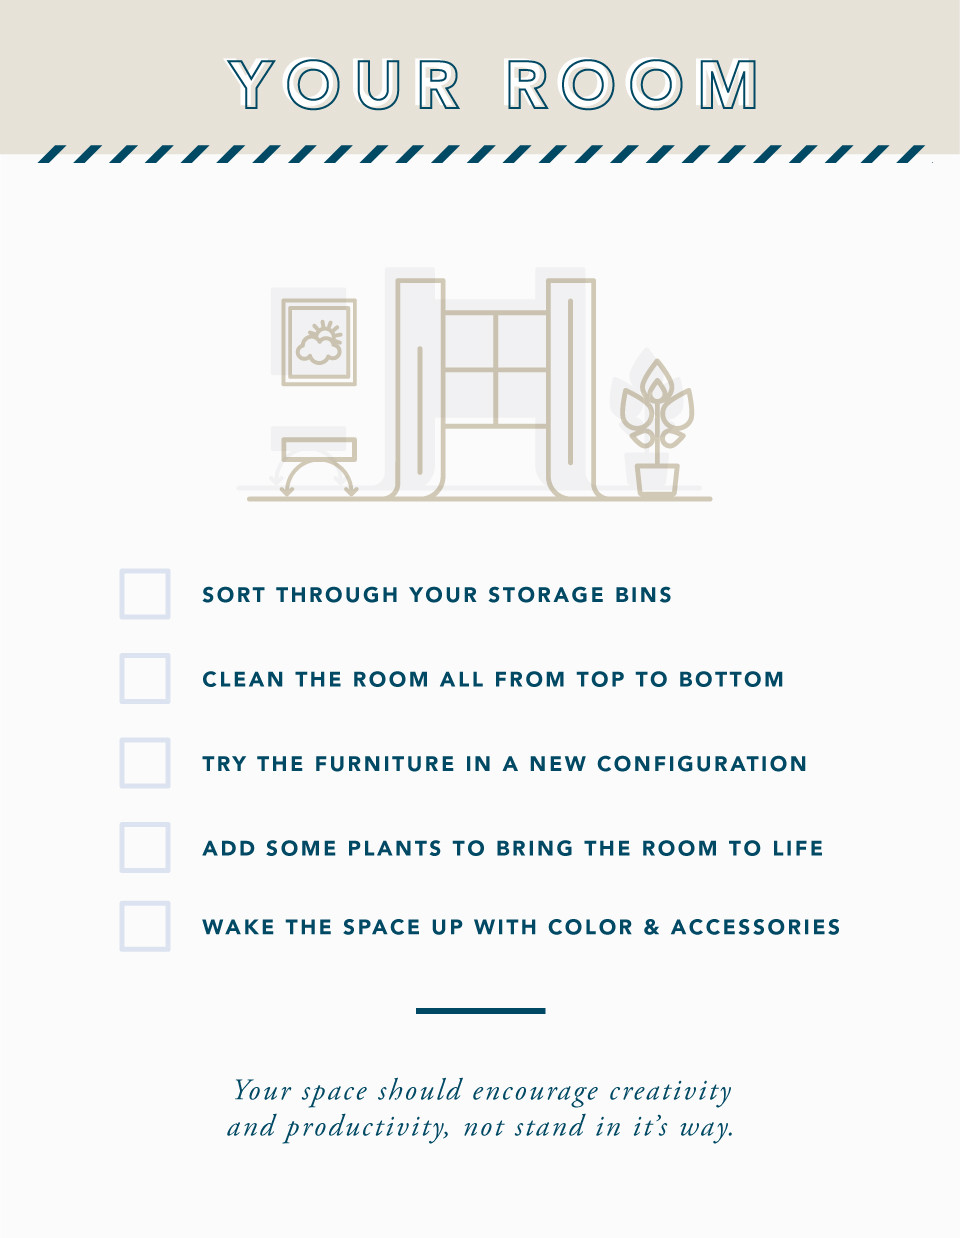 Spring Cleaning Tips for Your Room